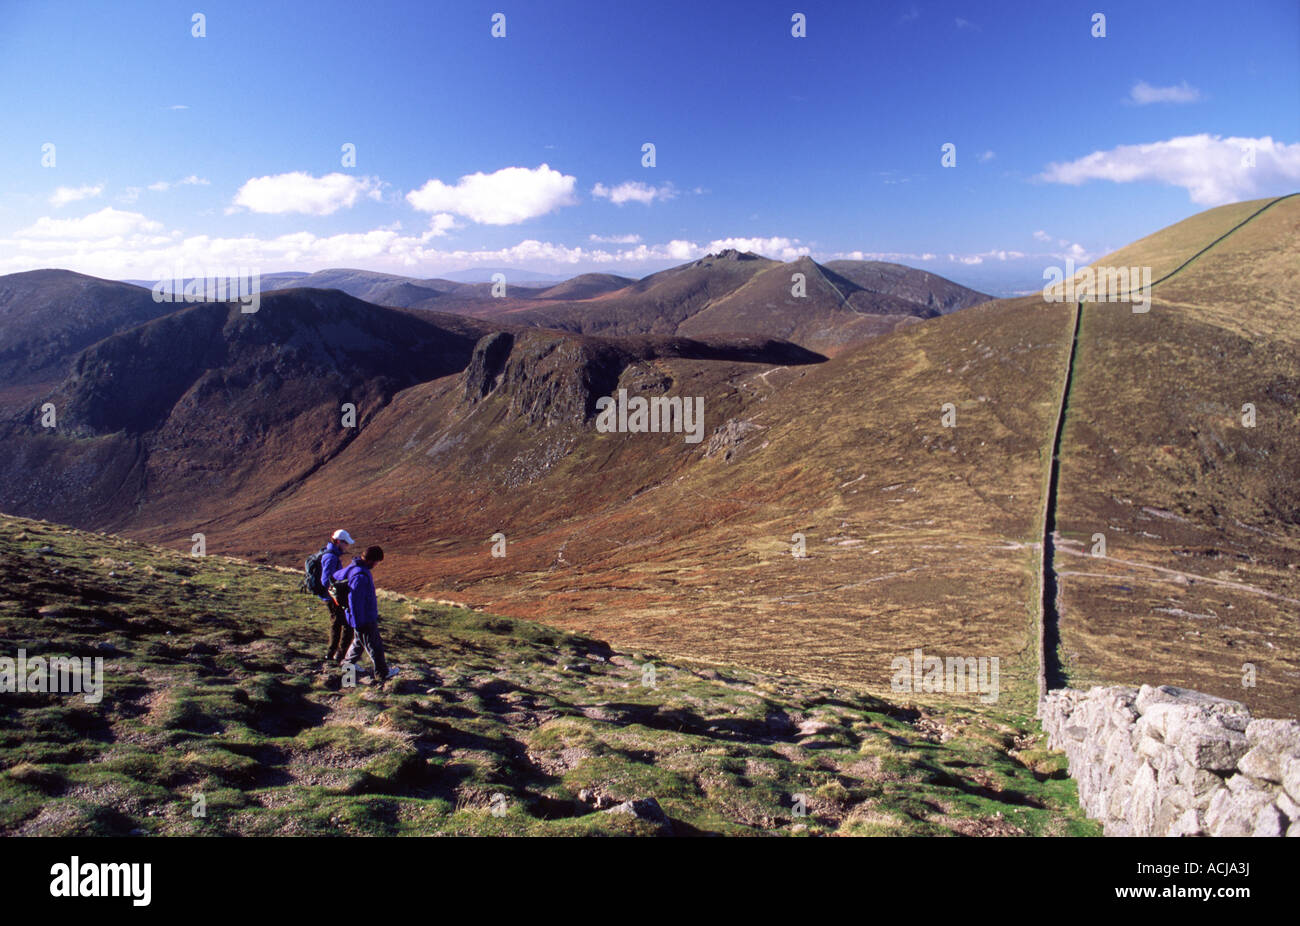 Walkers on the slopes of Slieve Donard, beside the Mourne Wall, County Down, Northern Ireland. - Stock Image